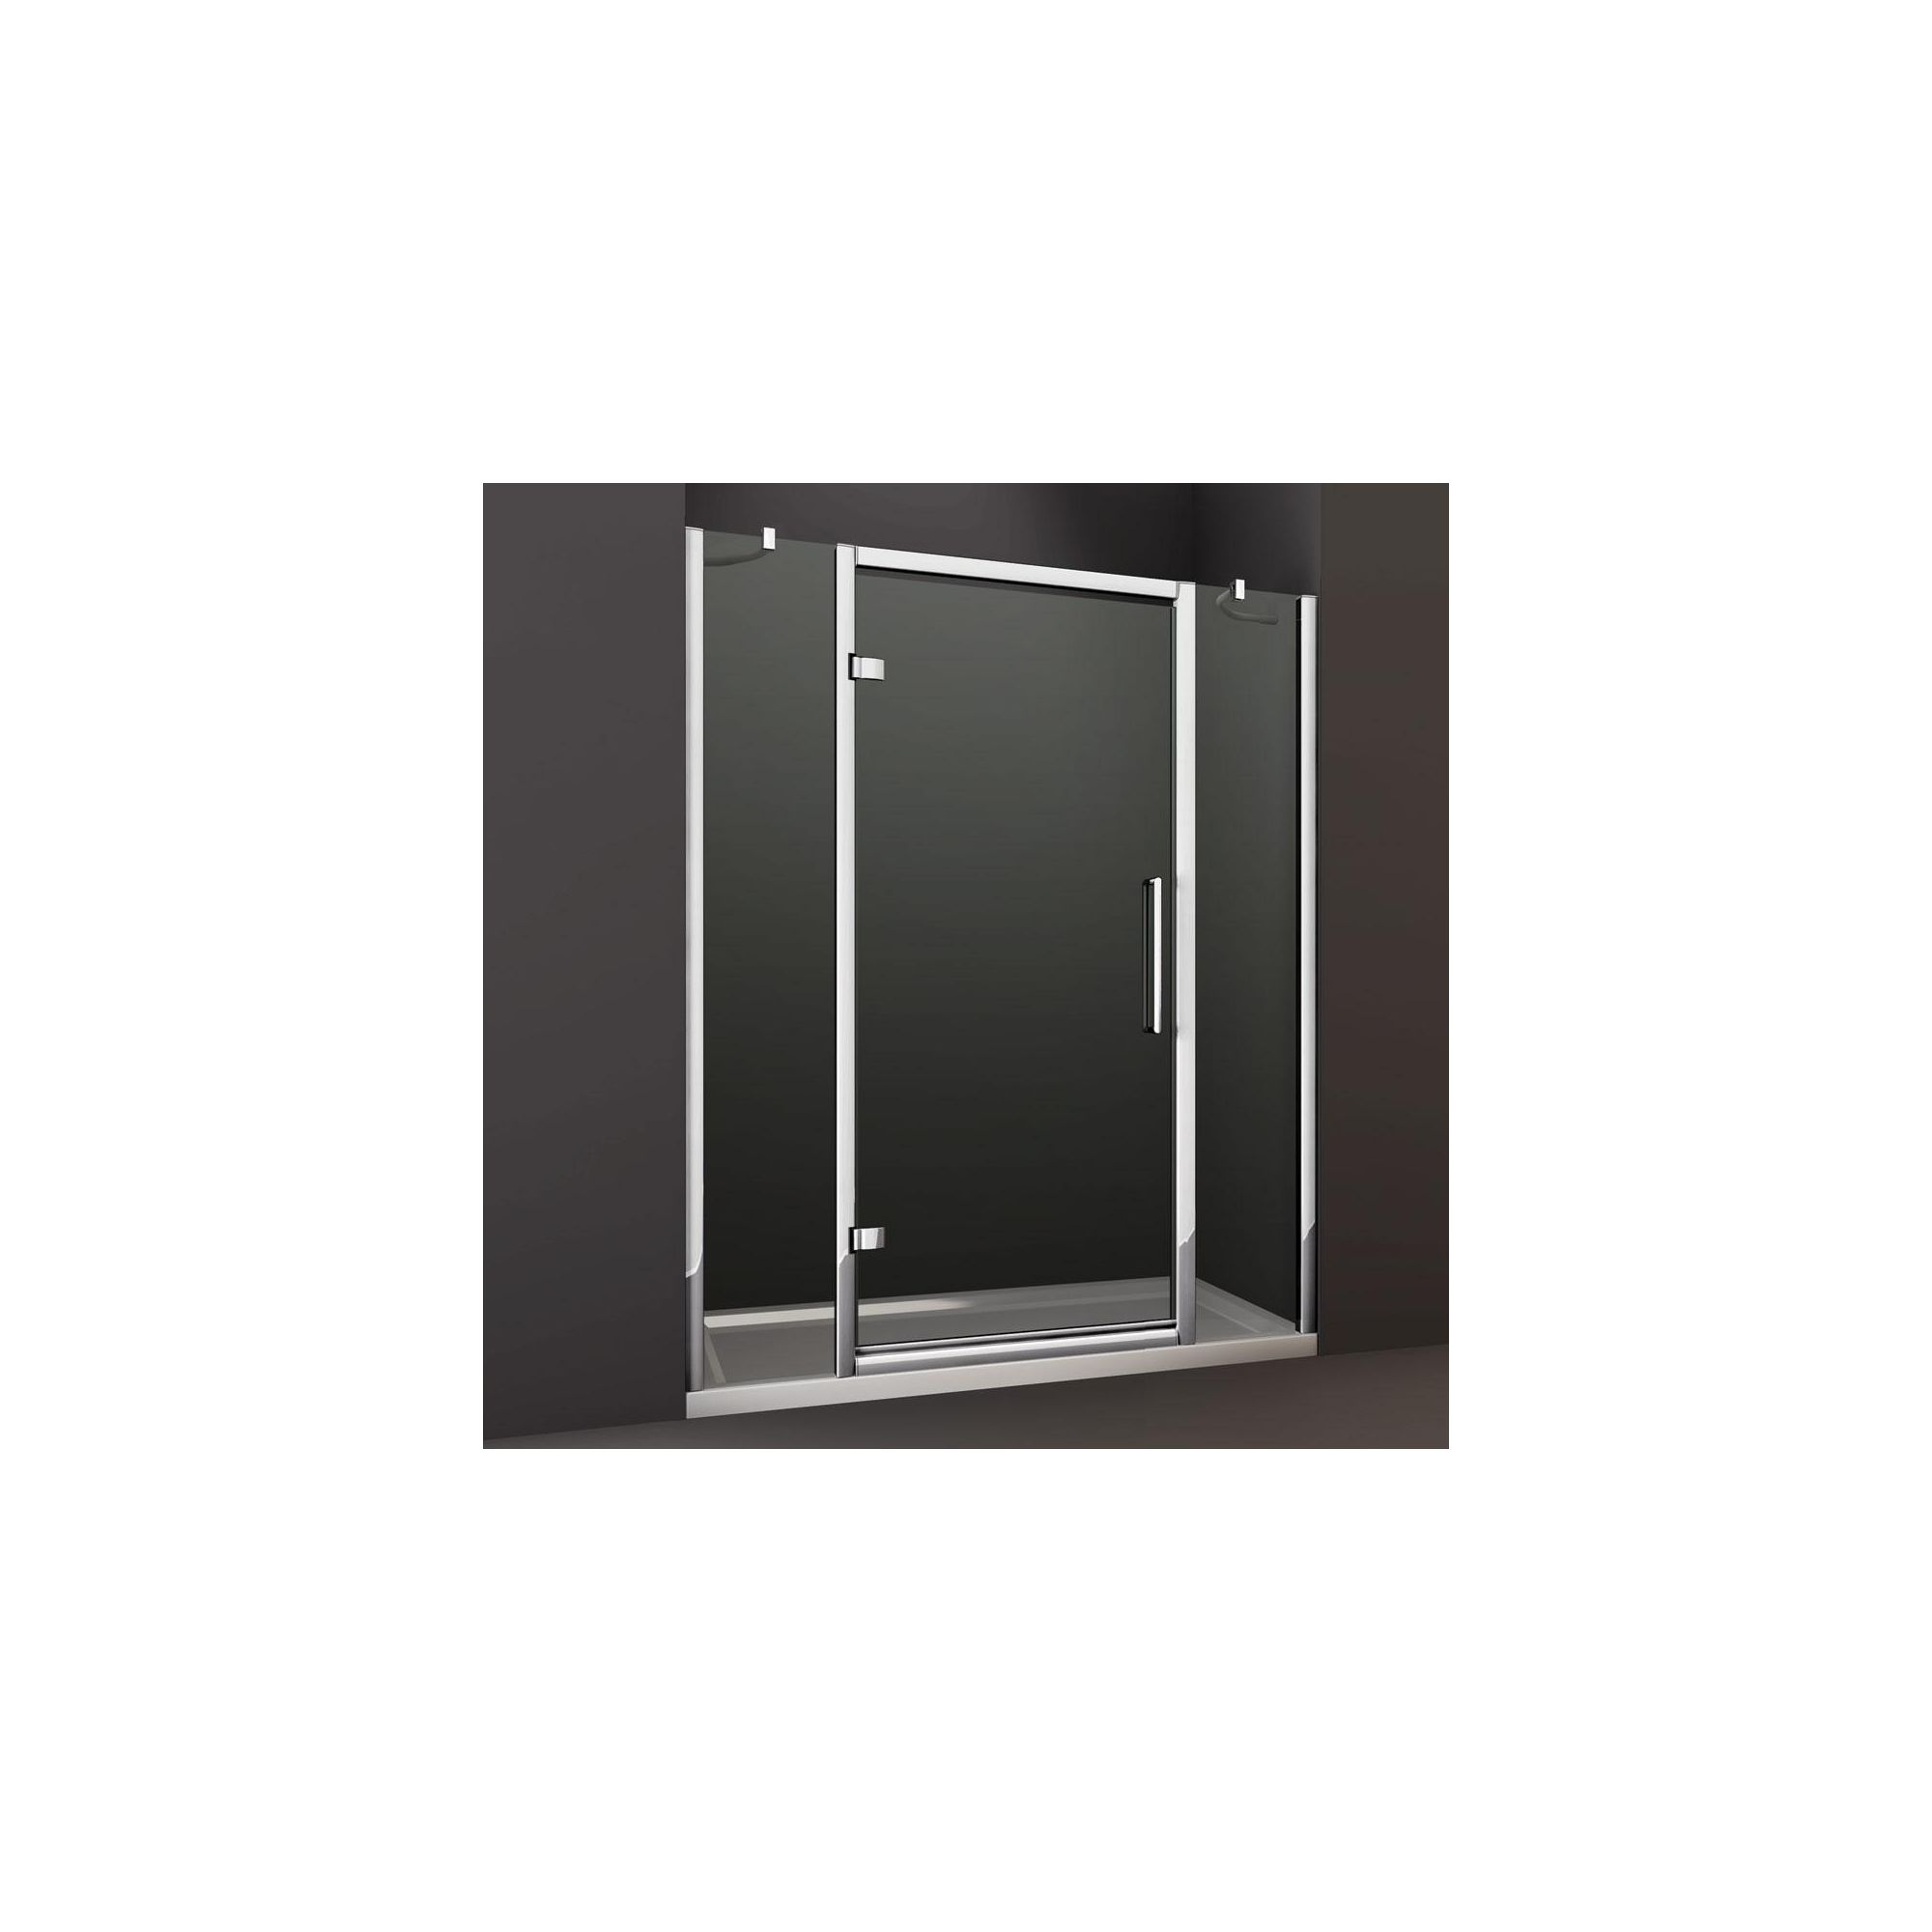 Merlyn Series 8 Double Inline Hinged Shower Door, 1000mm Wide, Chrome Frame, 8mm Glass at Tesco Direct